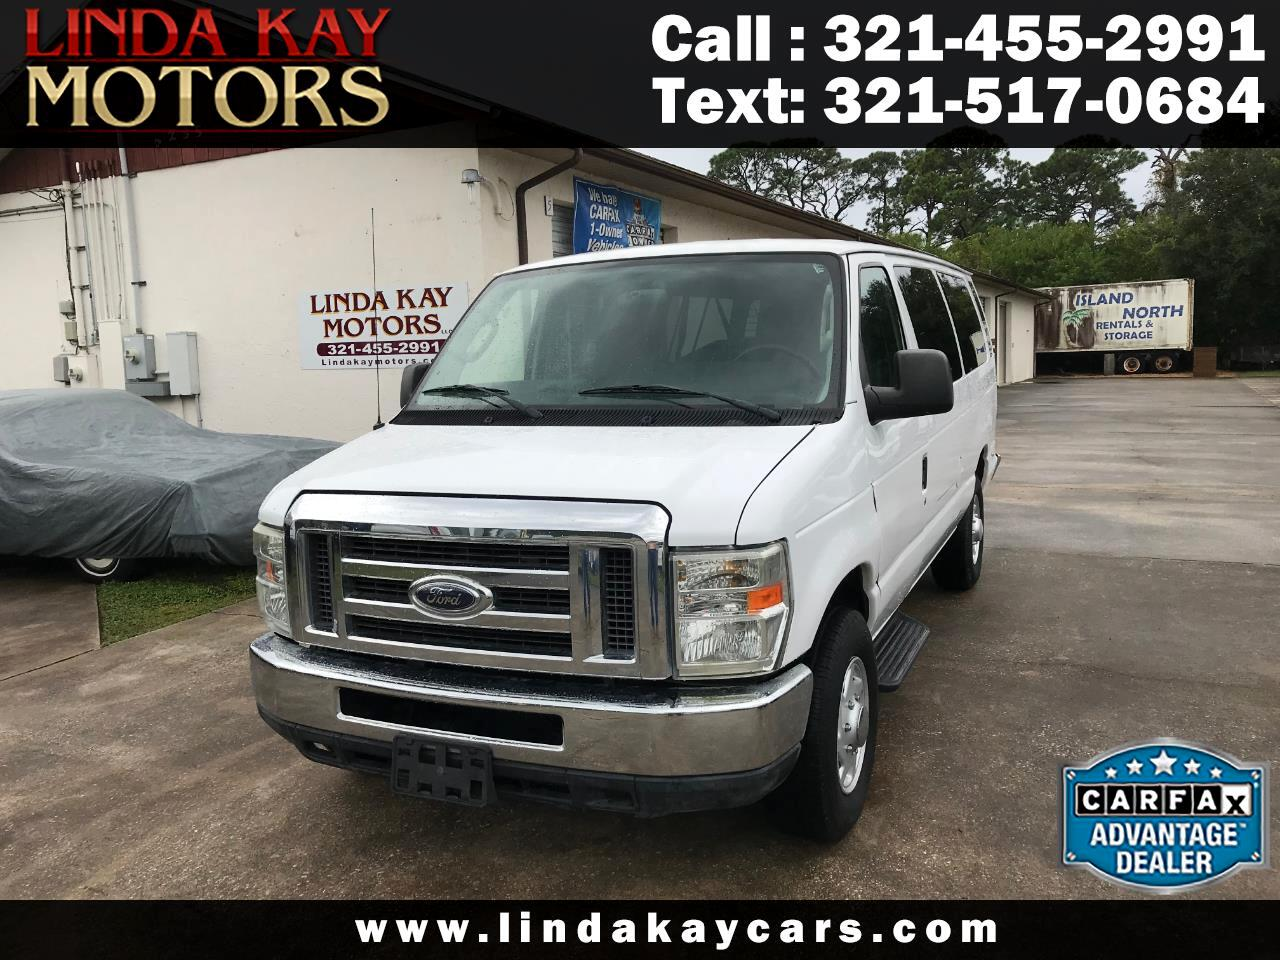 Ford Econoline Wagon E-350 Super Duty Ext XLT 2011